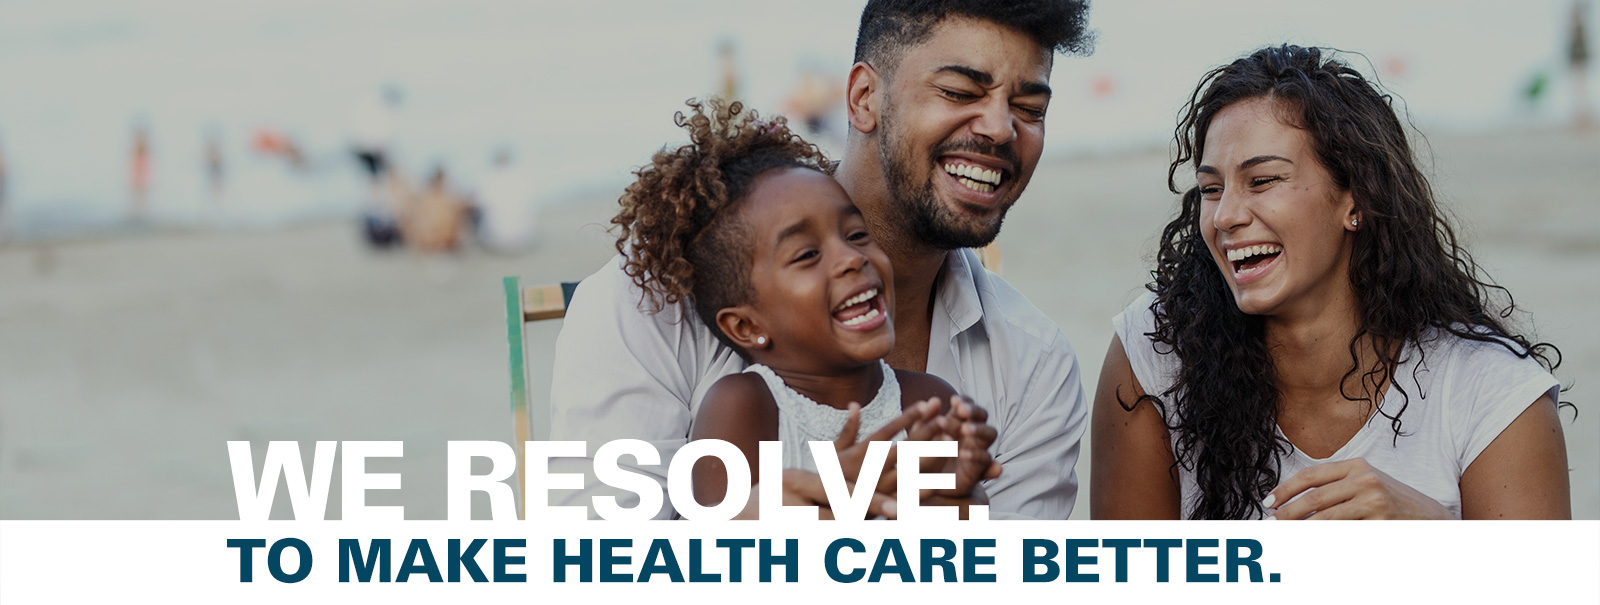 We Resolve to Make Health Care Better